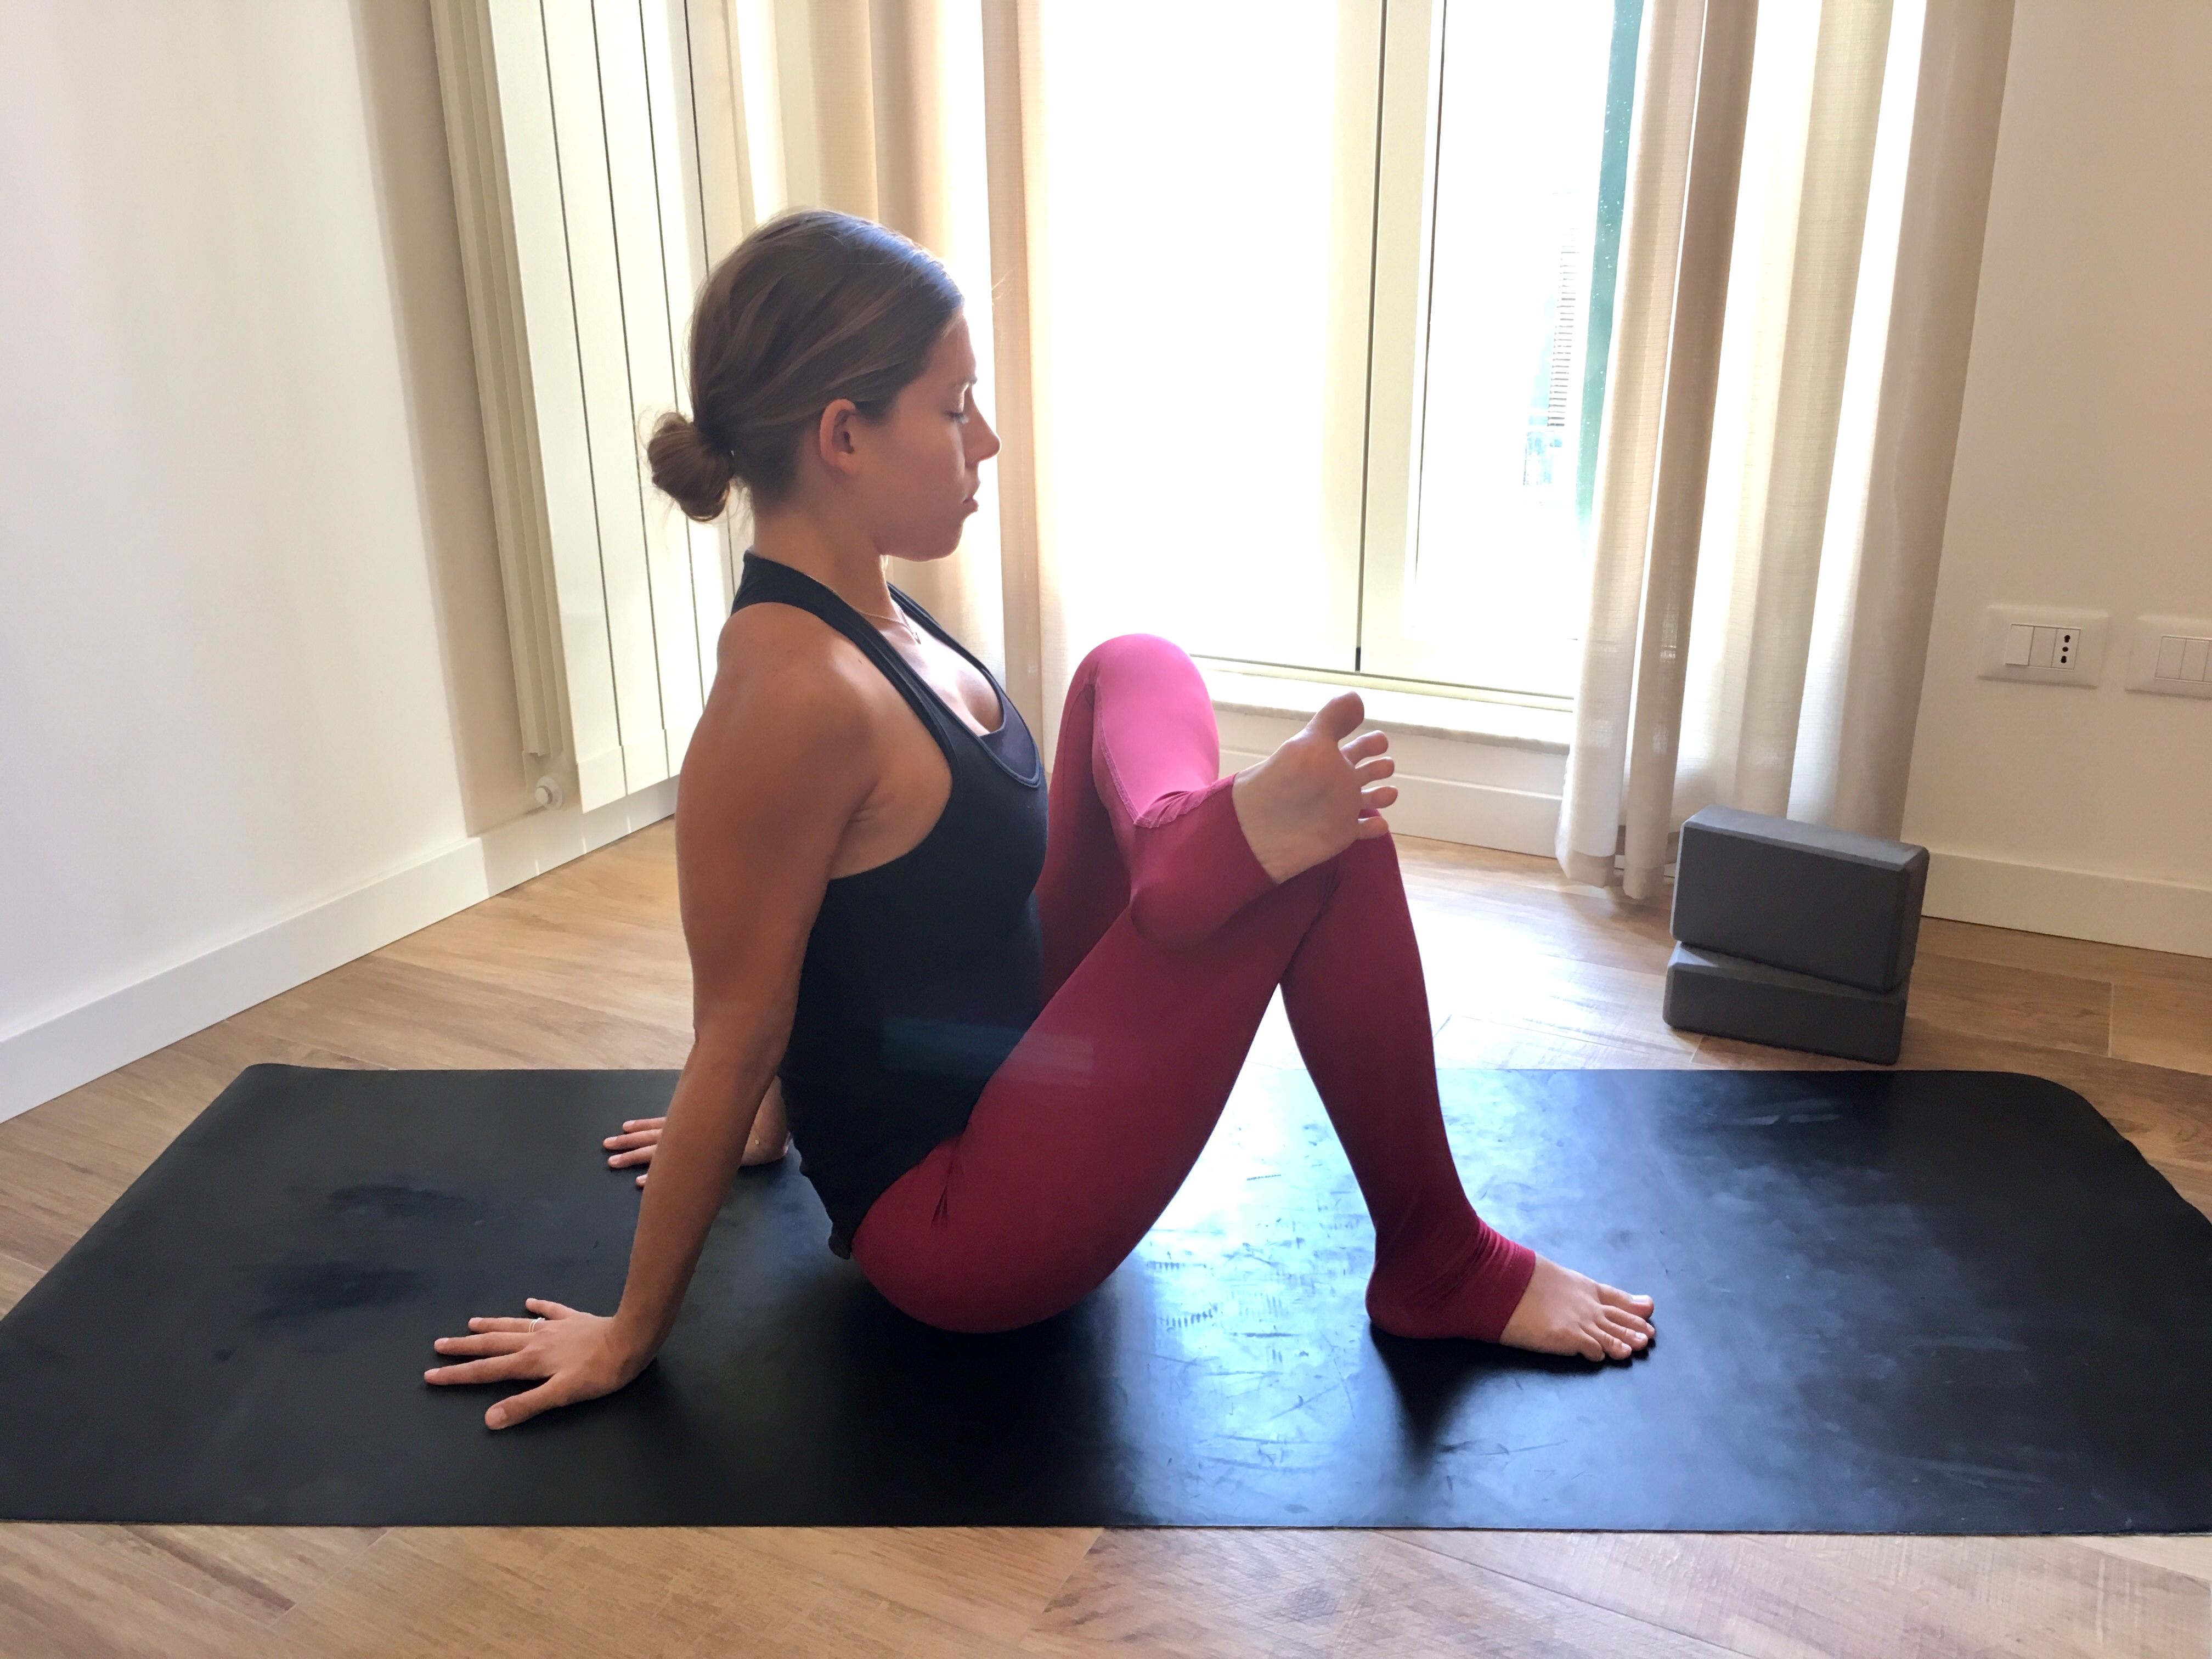 Seated Sucirandhrasana, seated eye of the needle pose, beginner's yoga, seated poses, yoga for piriformis syndrome